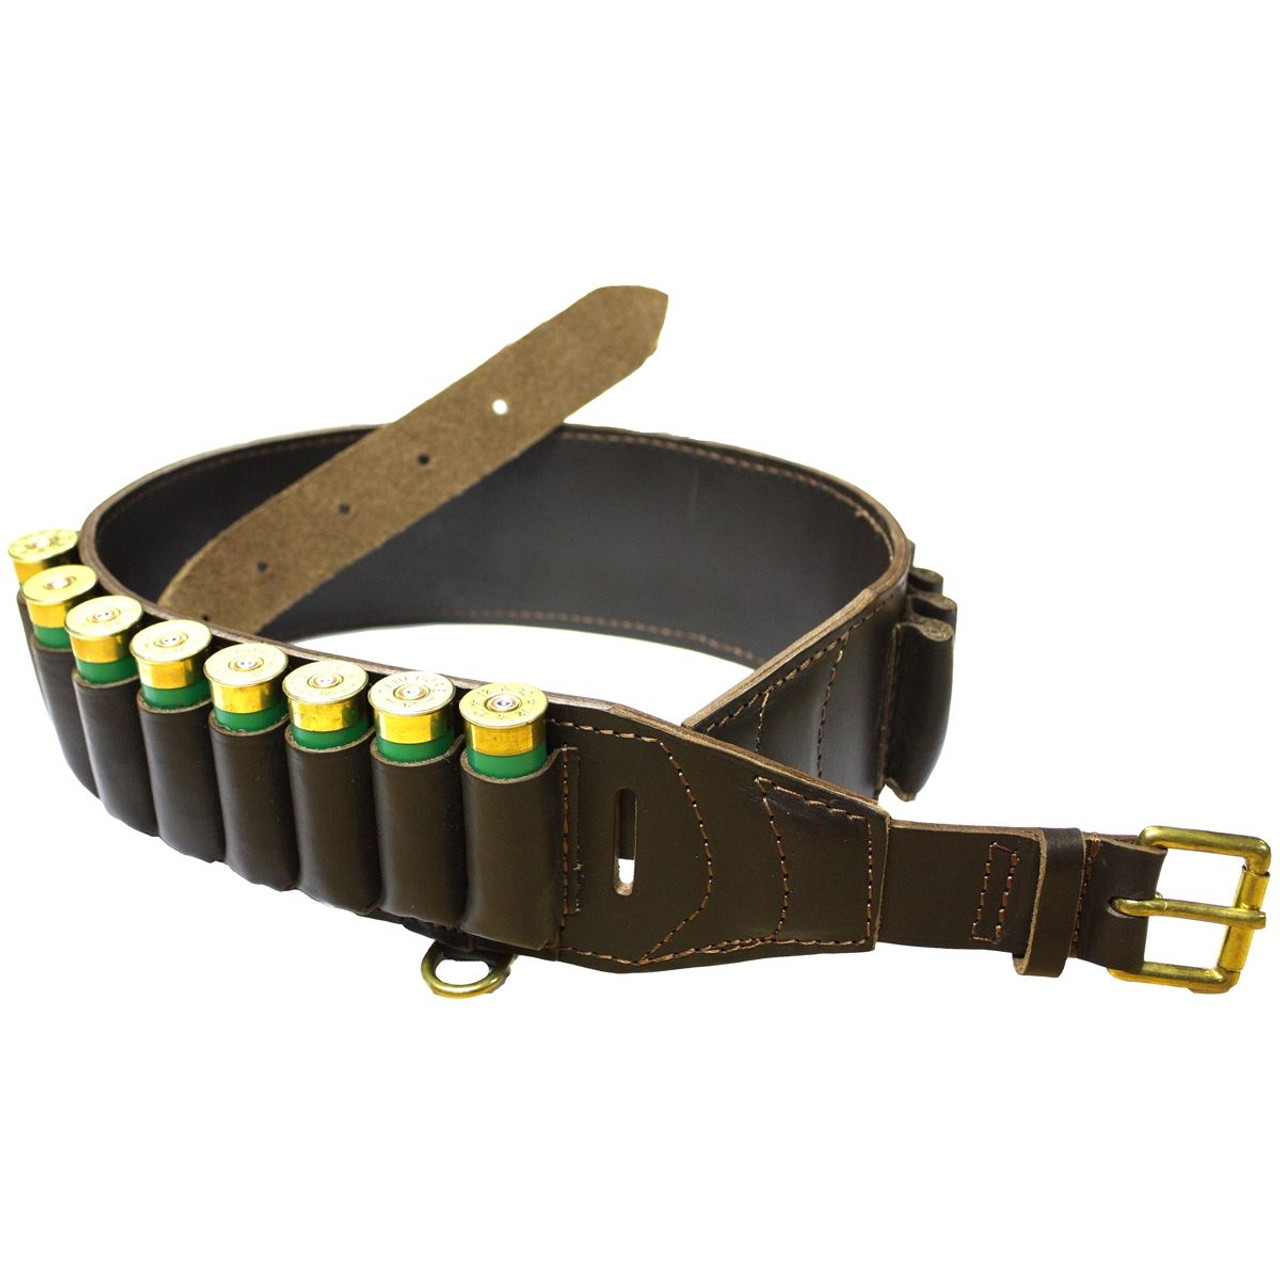 Bisley Deluxe Leather Cartridge Belt 12g